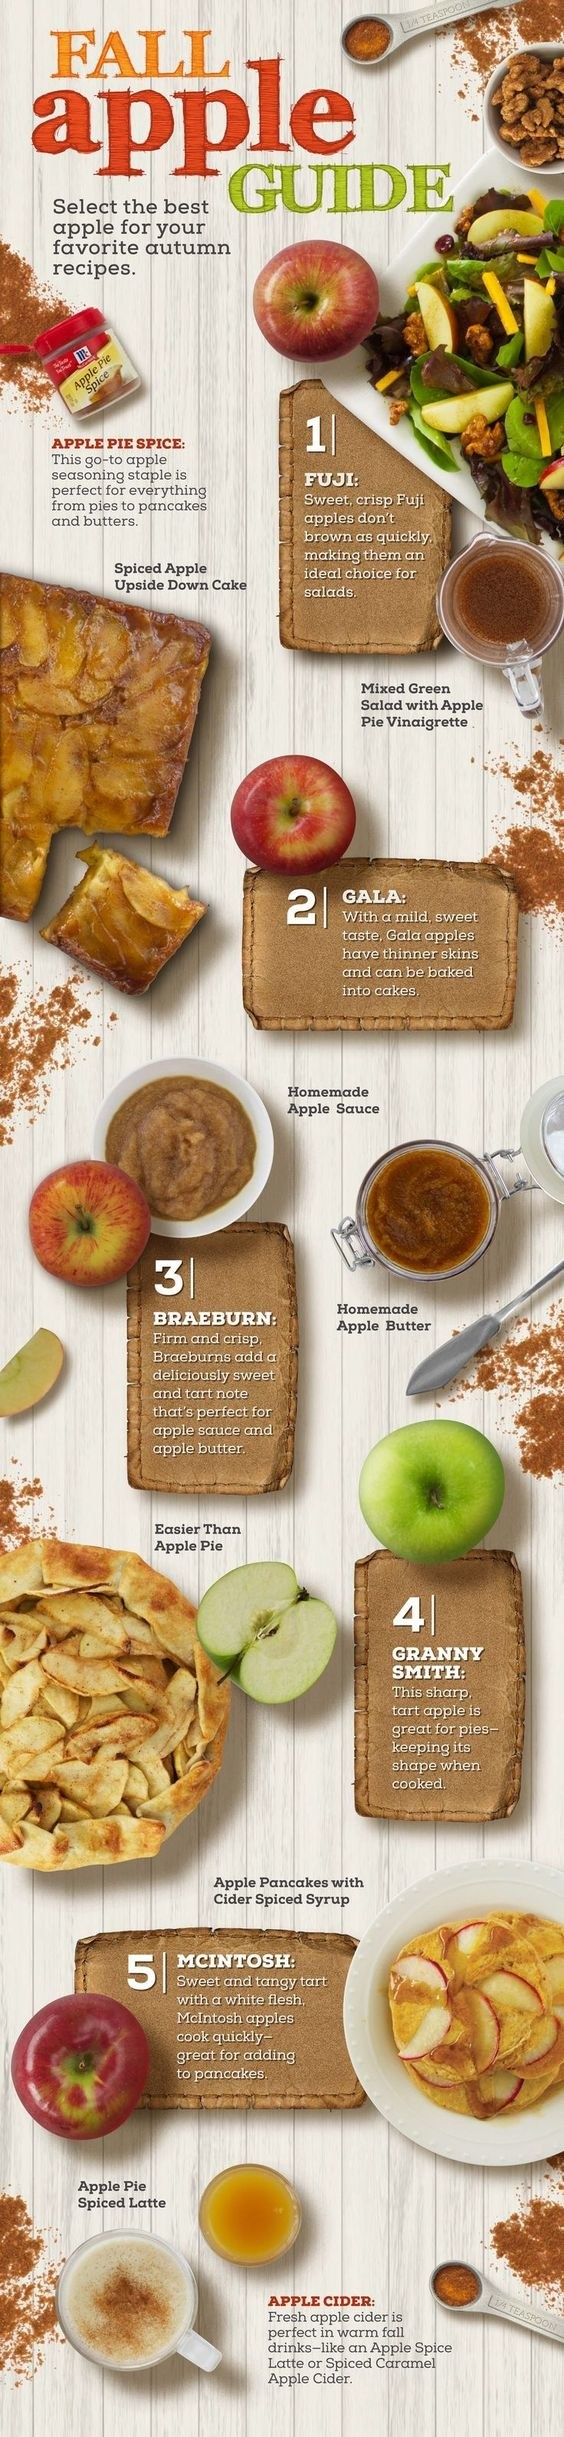 Select the apples that will work best for making pies, applesauce, apple butter, and other fall dishes.